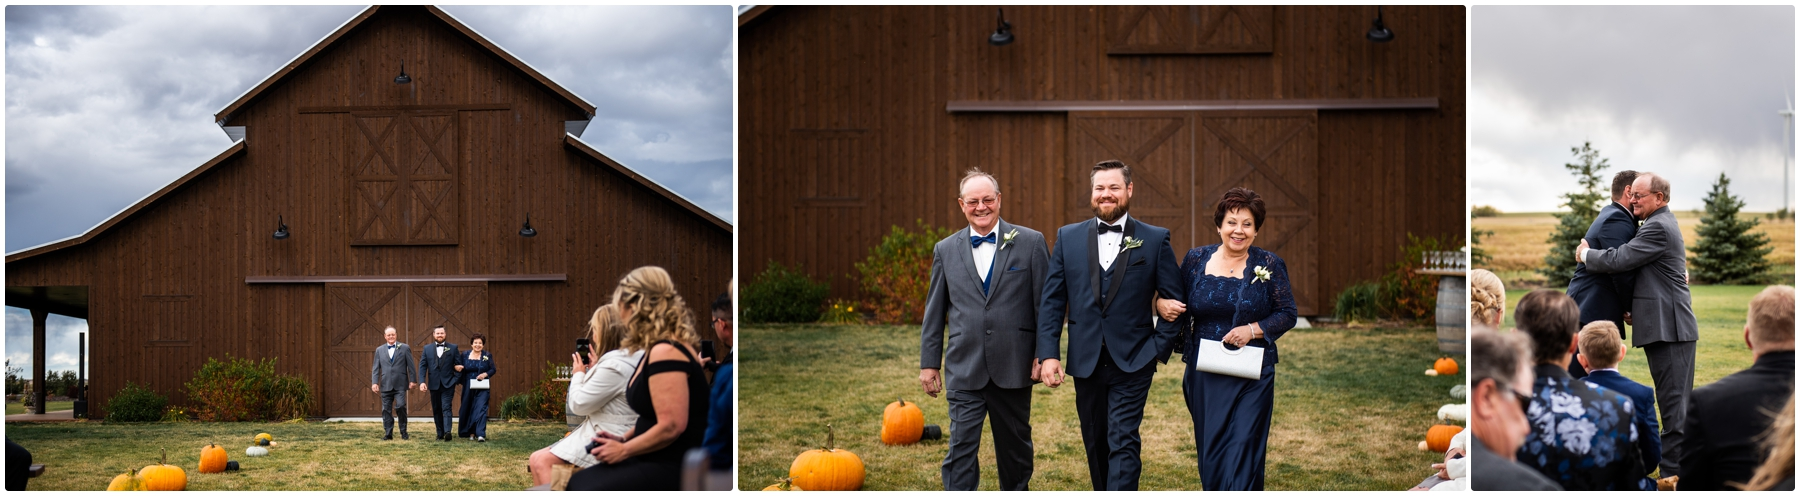 Sweet Haven Barn Wedding Ceremony Photographers